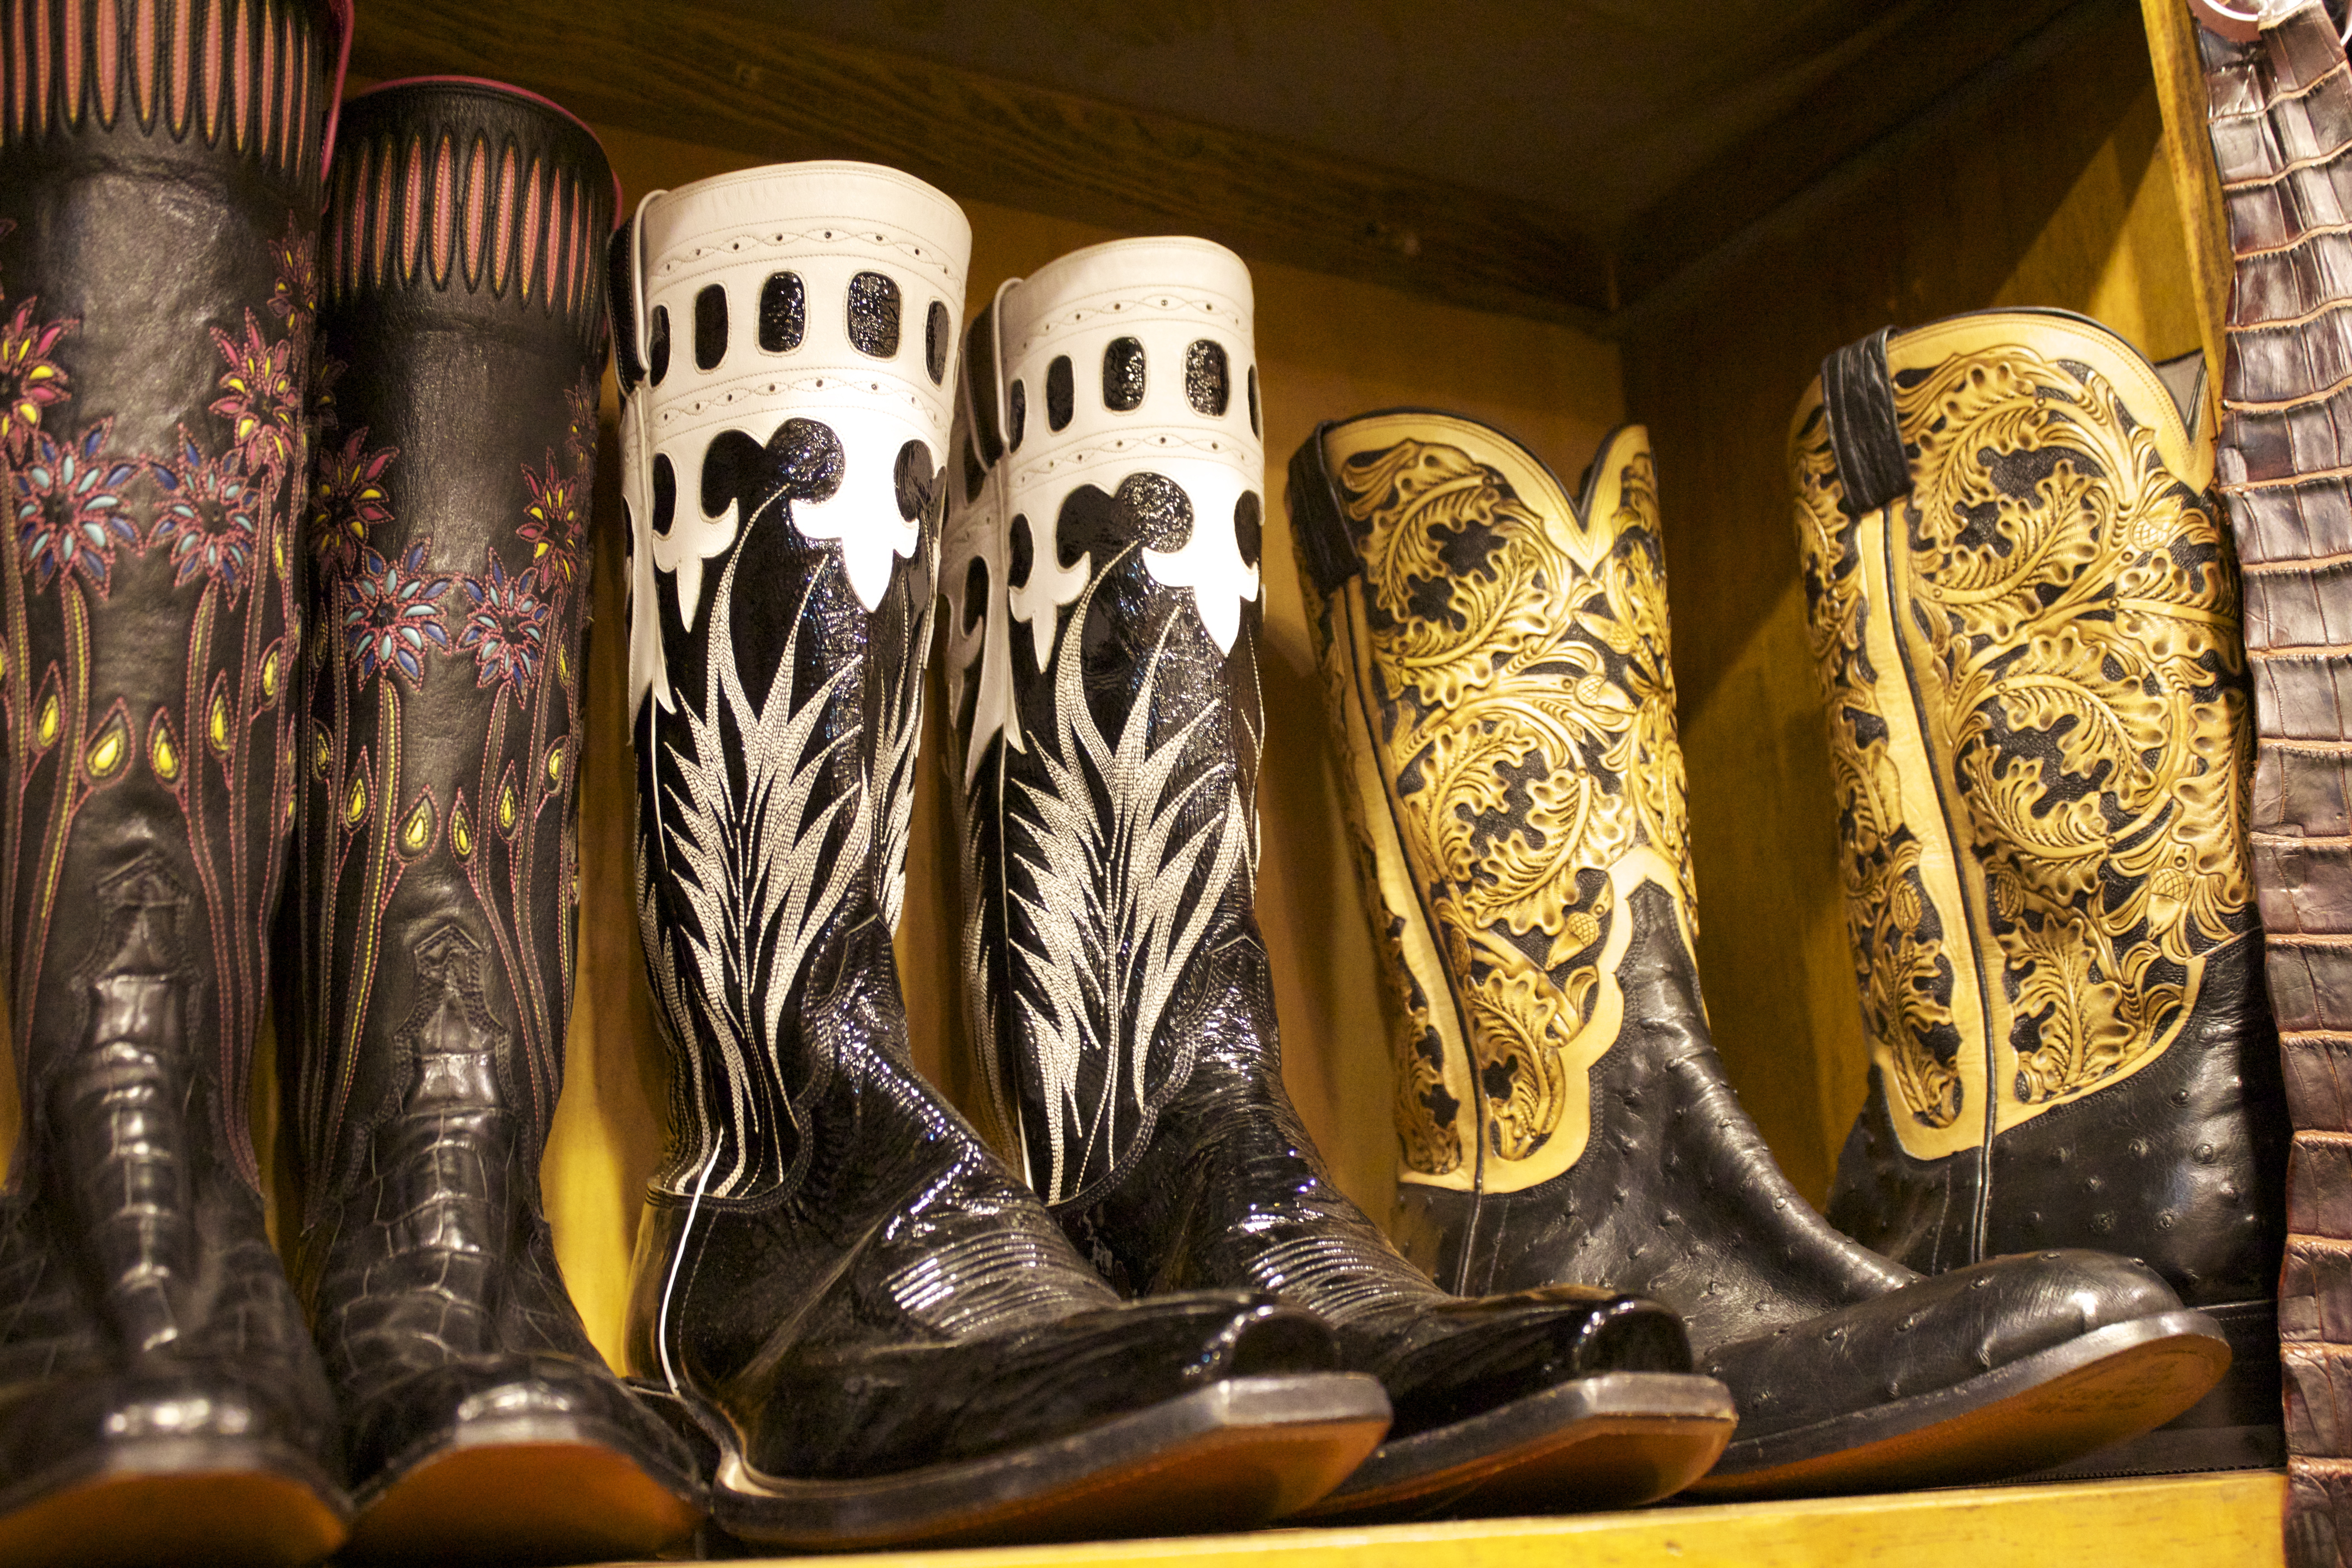 M.L. Leddy's Cowboy boots at Rodeo Houston | Horses & Heels